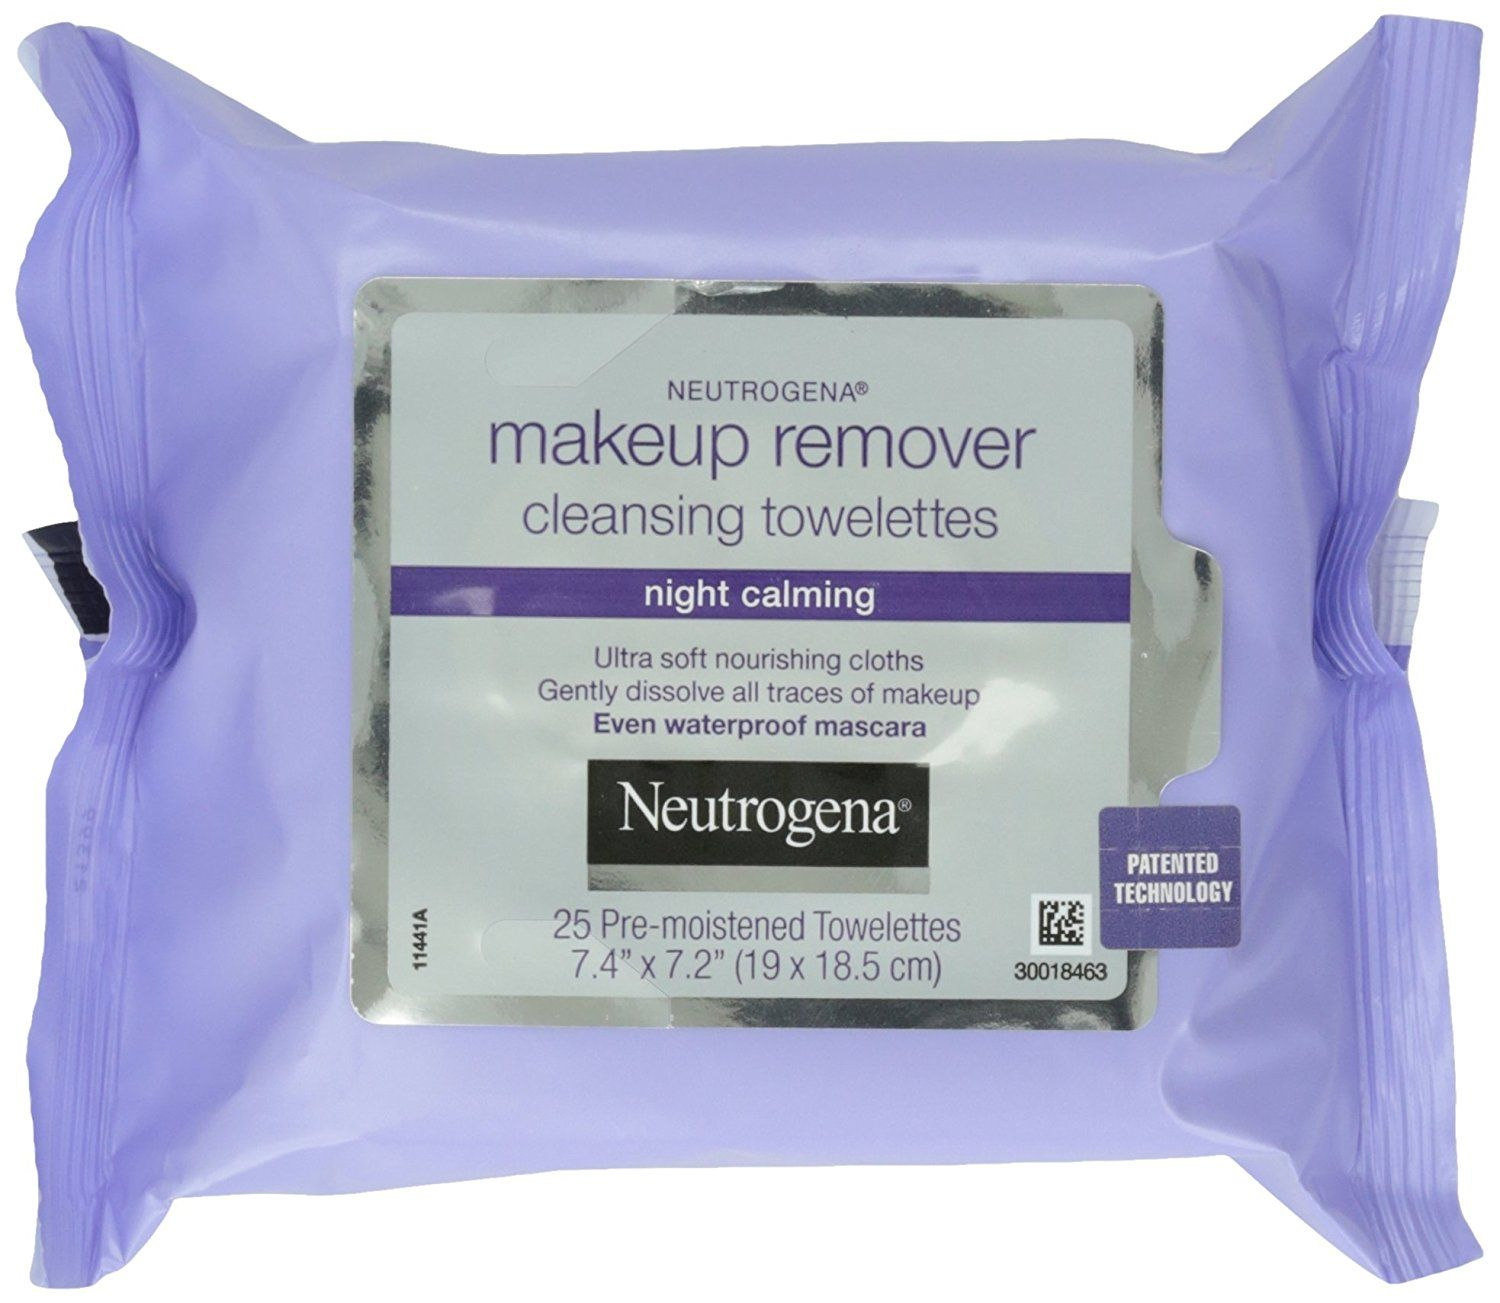 Neutrogena Makeup Remover Cleansing Towelettes Wipes